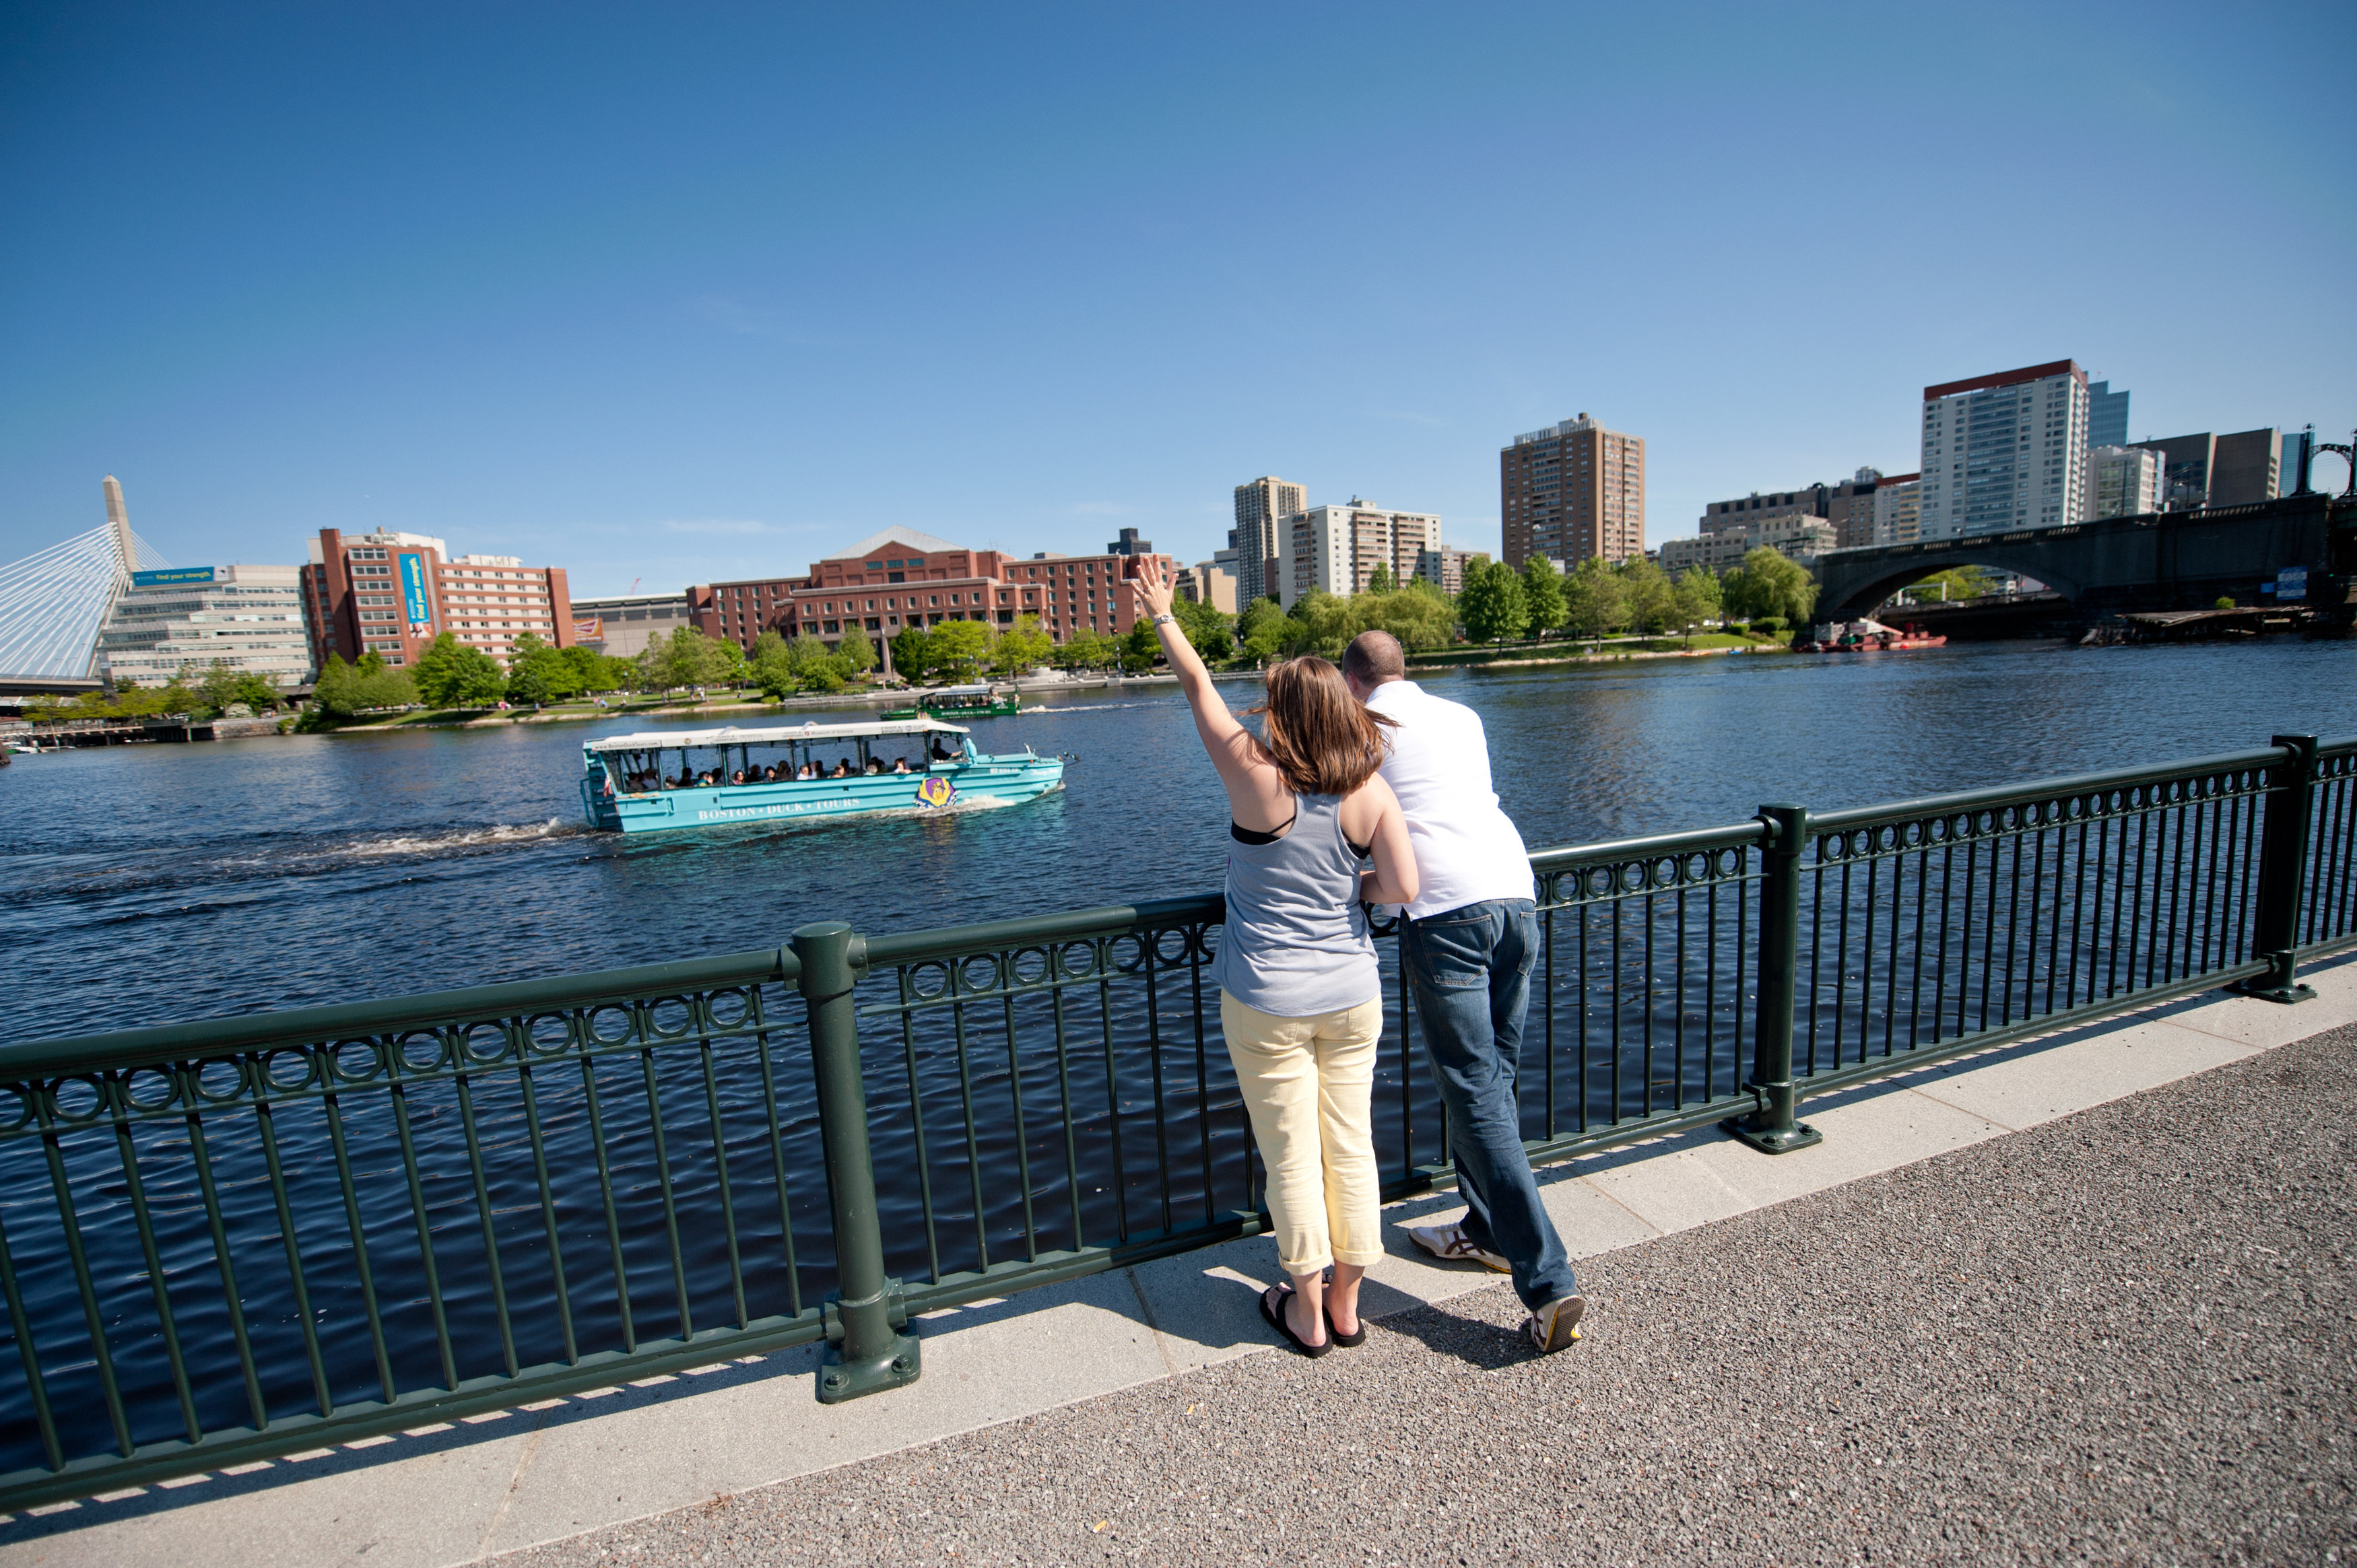 Image 11 of Marriage Proposal on the Charles River